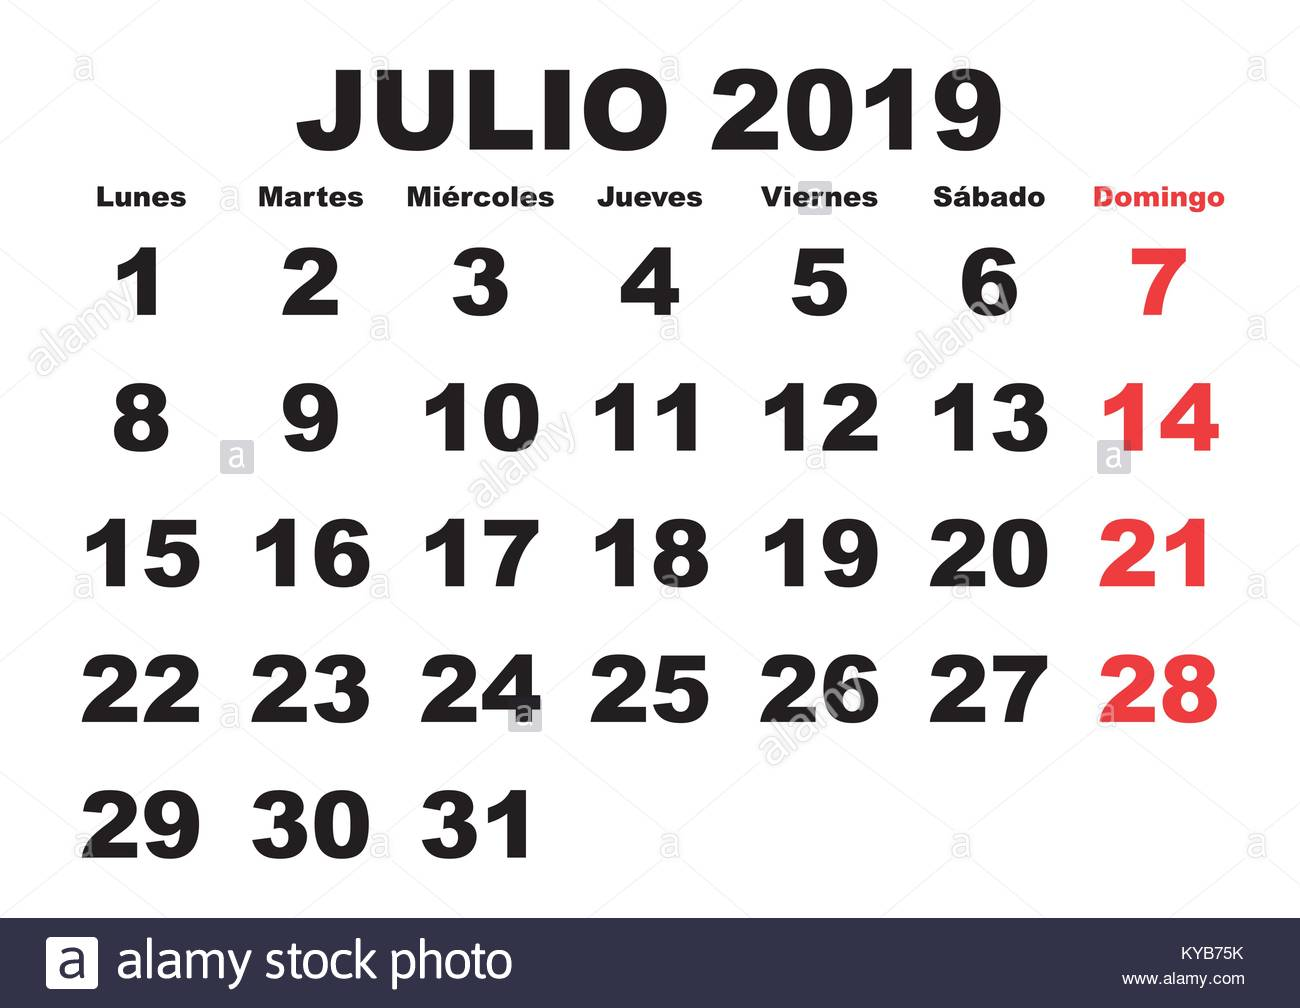 july month in a year 2019 wall calendar in spanish julio 2019 calendario 2019